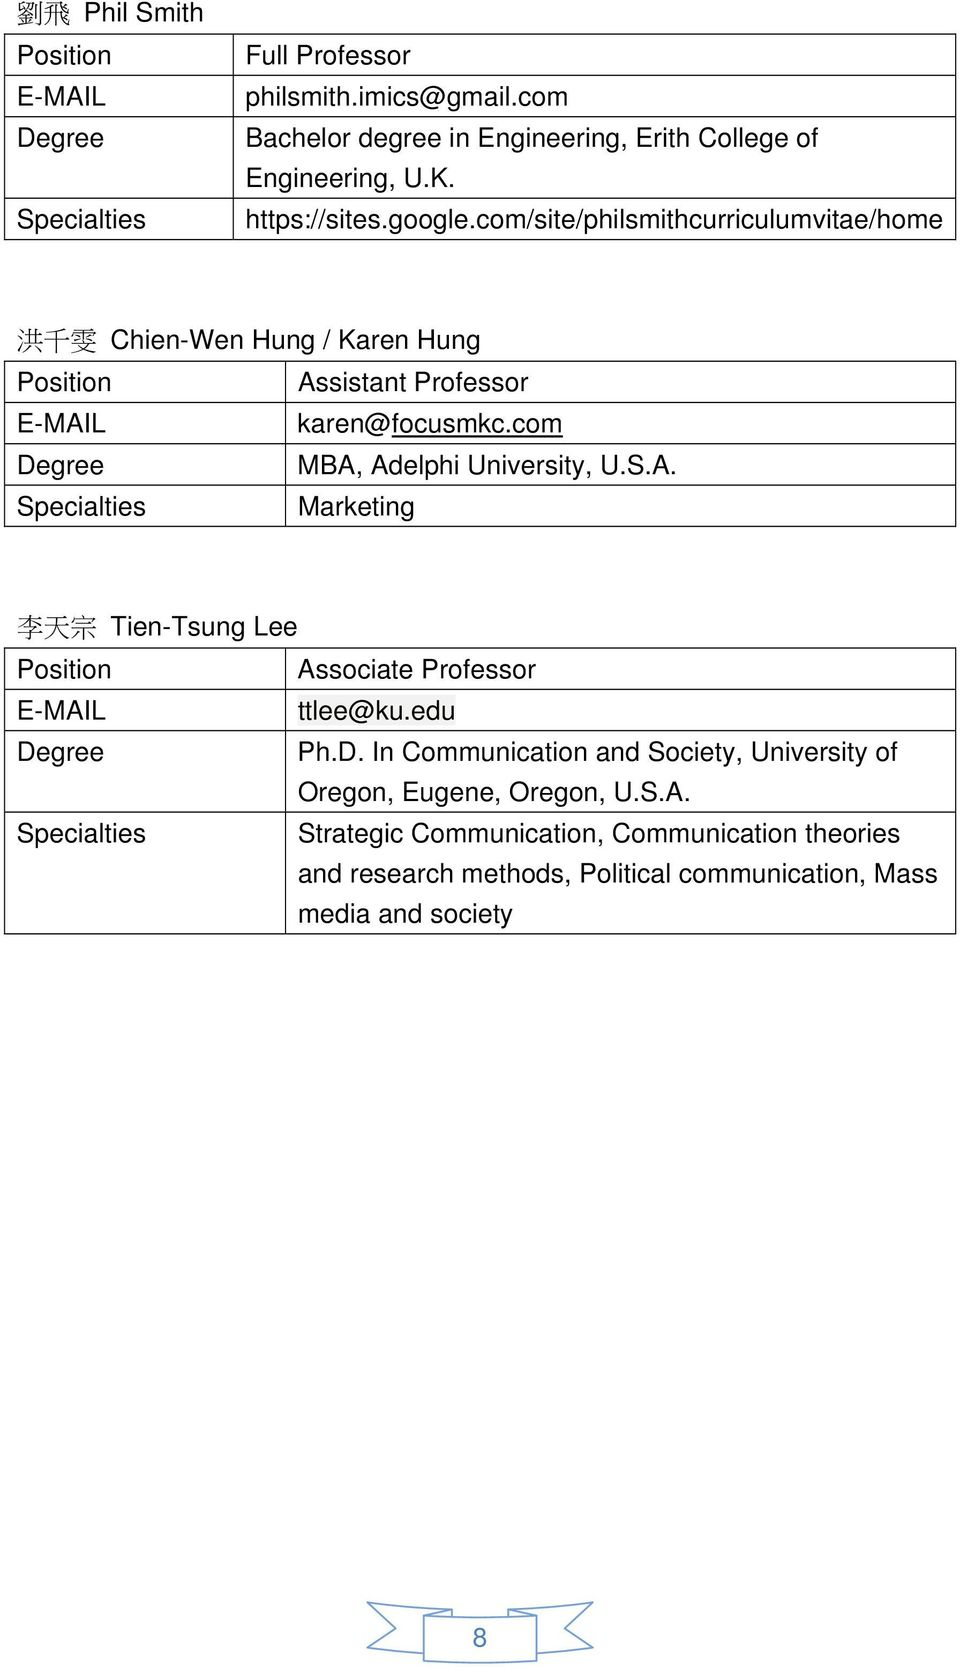 com Degree MBA, Adelphi University, U.S.A. Specialties Marketing 李 天 宗 Tien-Tsung Lee Position Associate Professor E-MAIL ttlee@ku.edu Degree Ph.D. In Communication and Society, University of Oregon, Eugene, Oregon, U.